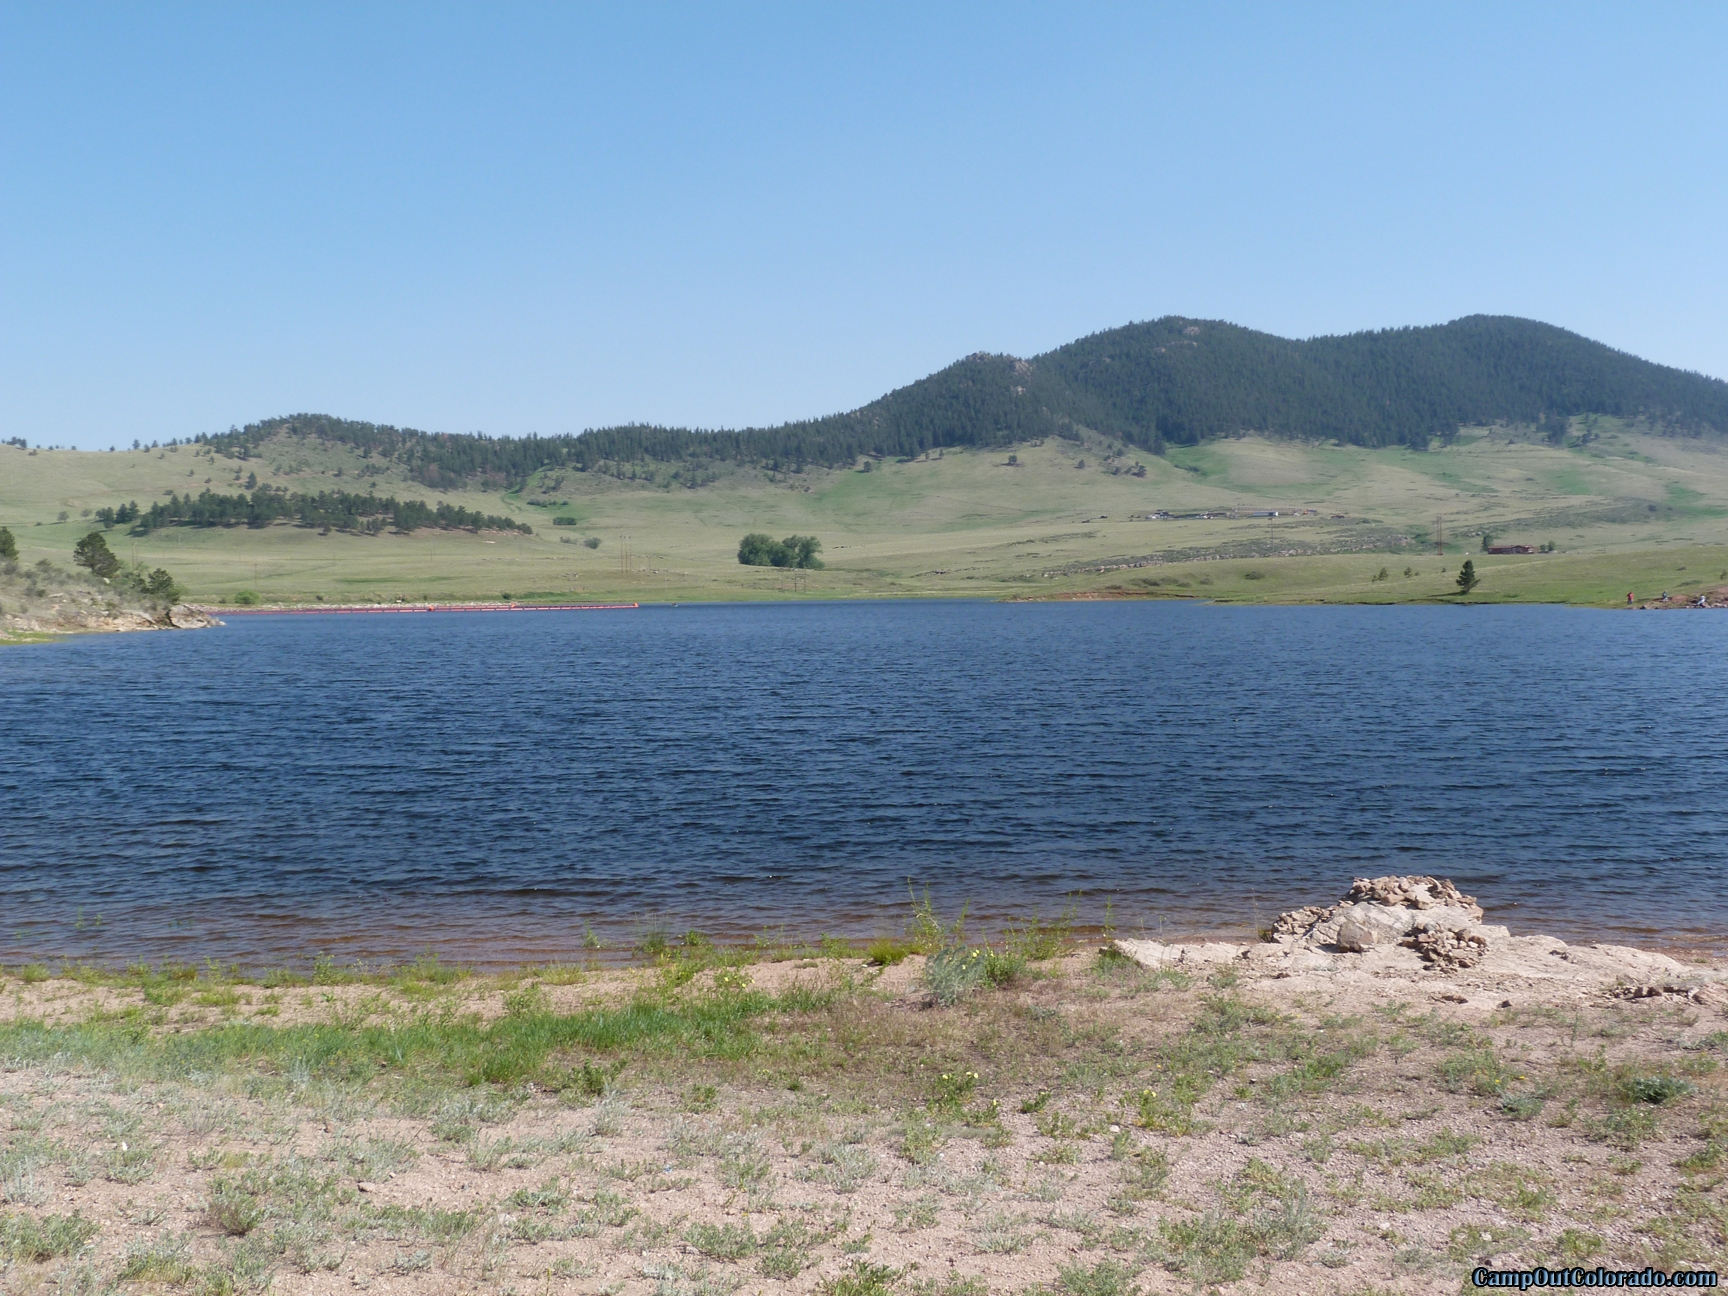 camp-out-colorado-pinewood-open-space-across-lake